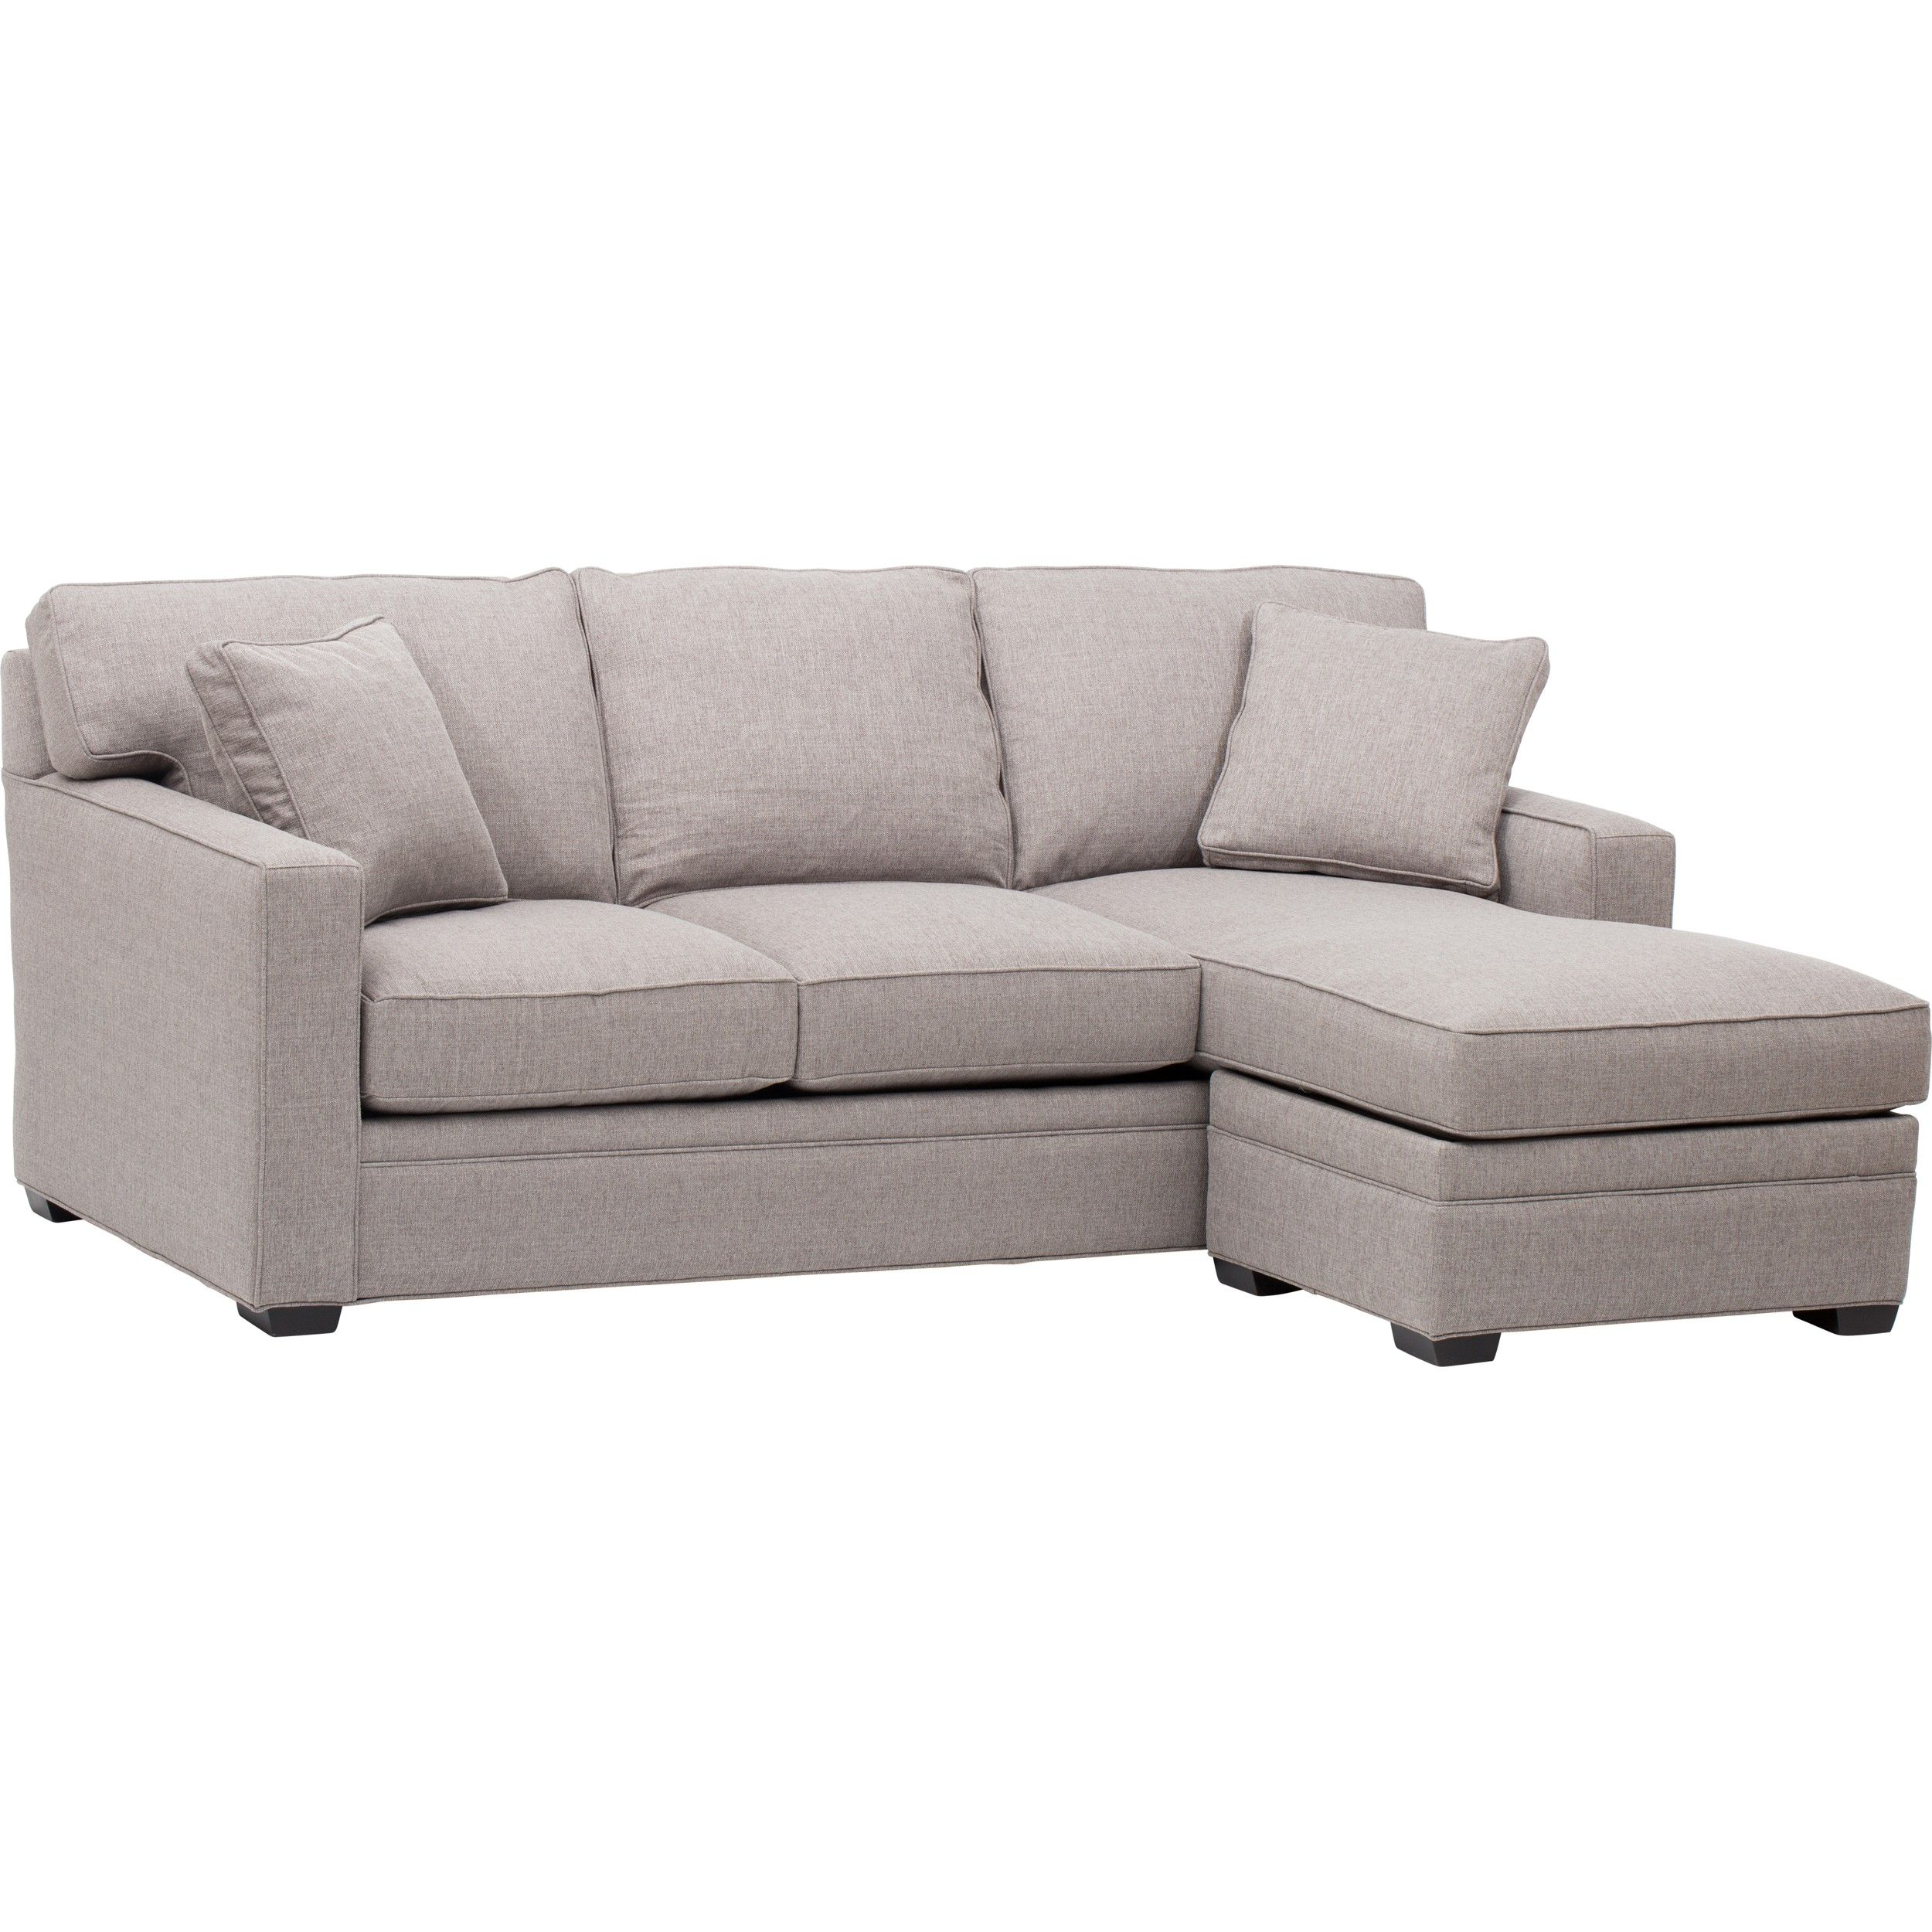 Savvy Lincoln Chaise Sectional Sleeper Sofa Queen at Sleepers In